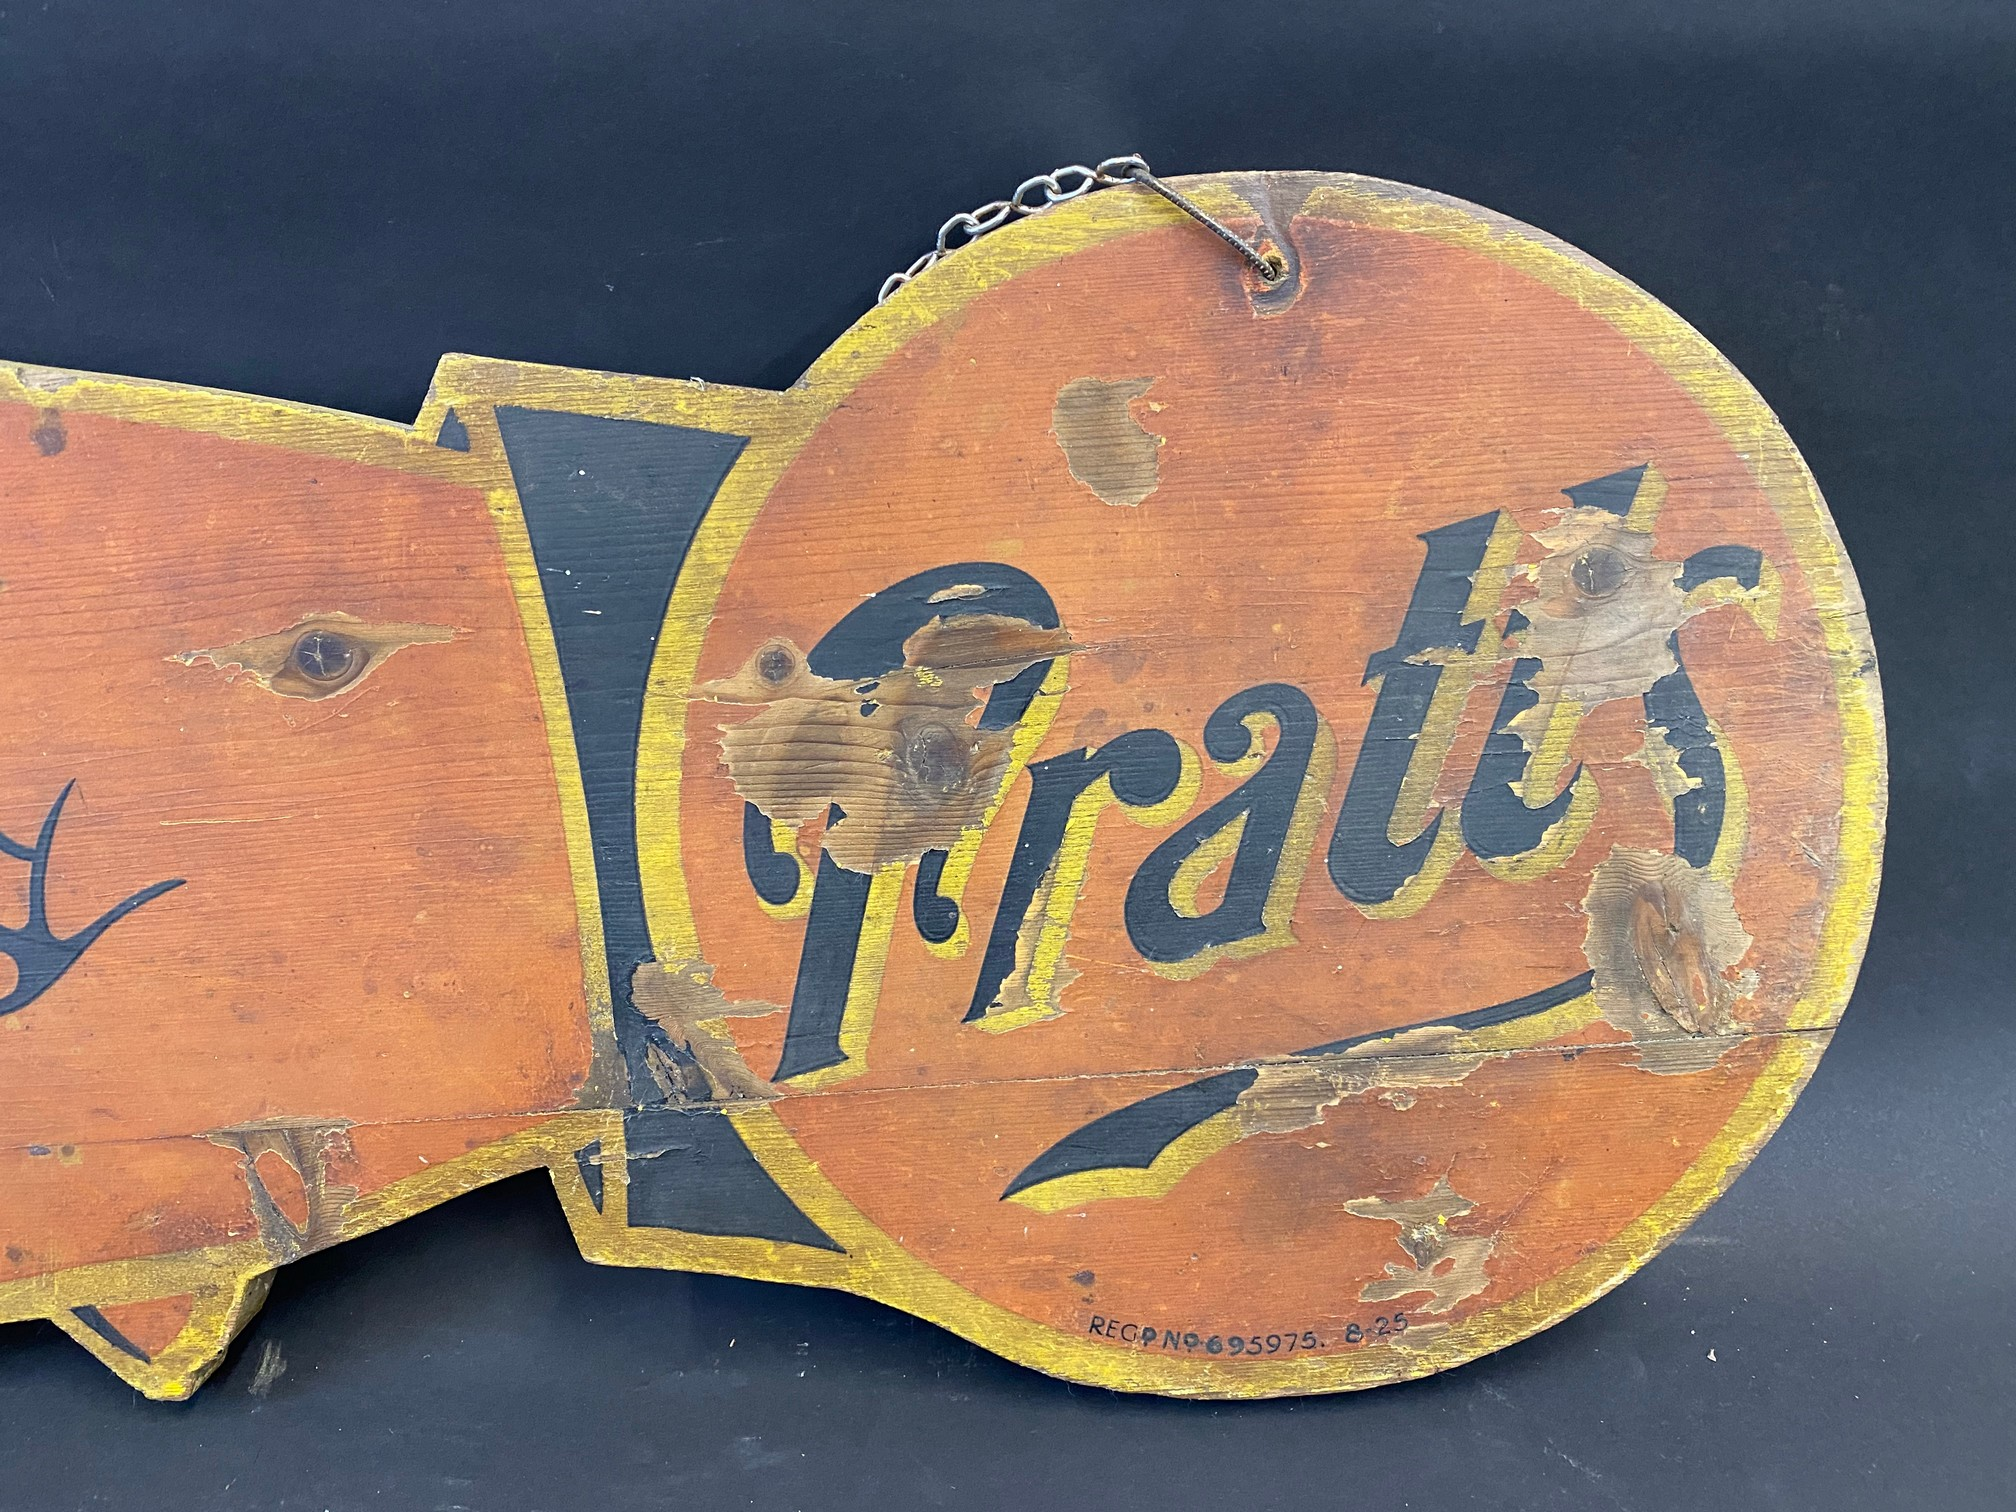 """An early Pratts painted wooden double sided directional 'pointing finger' sign dated 1925, 39 x 12"""". - Image 5 of 6"""